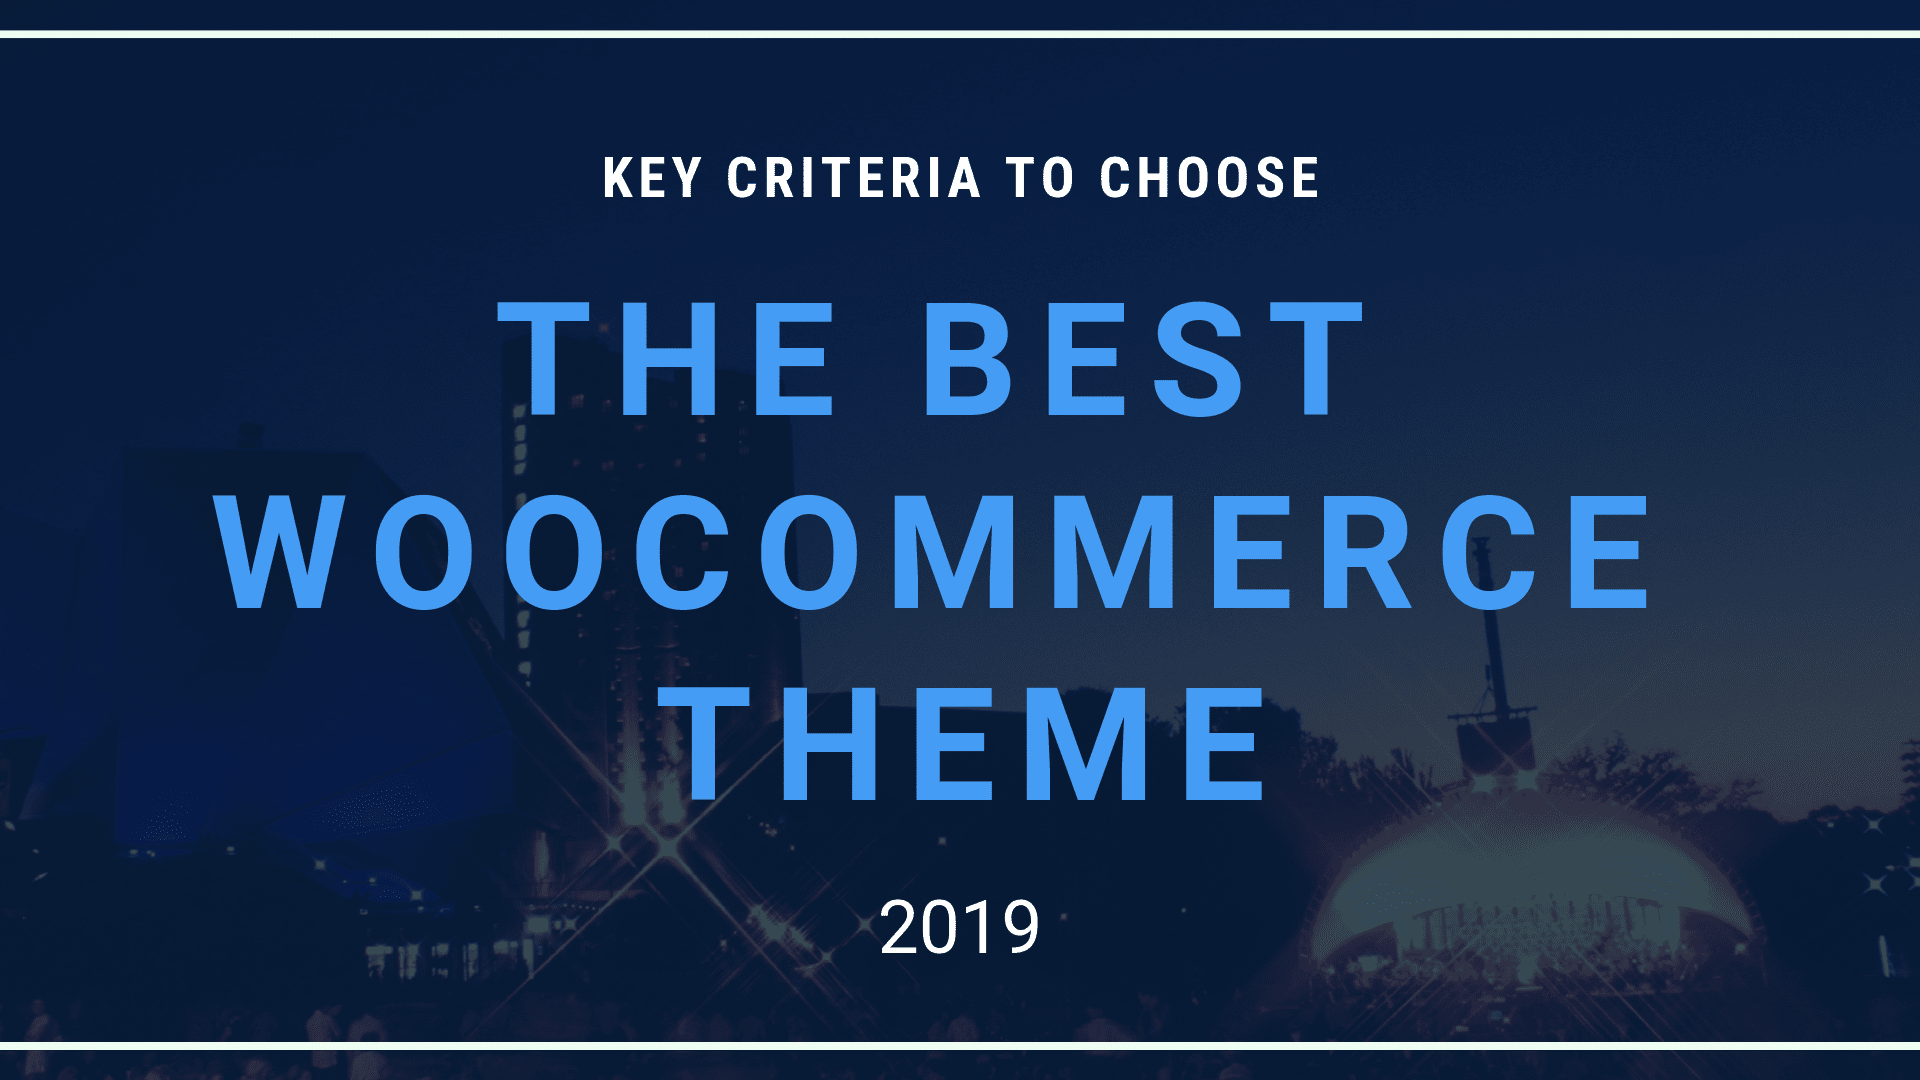 key-criteria-to-choose-the-best-woocommerce-theme-2019